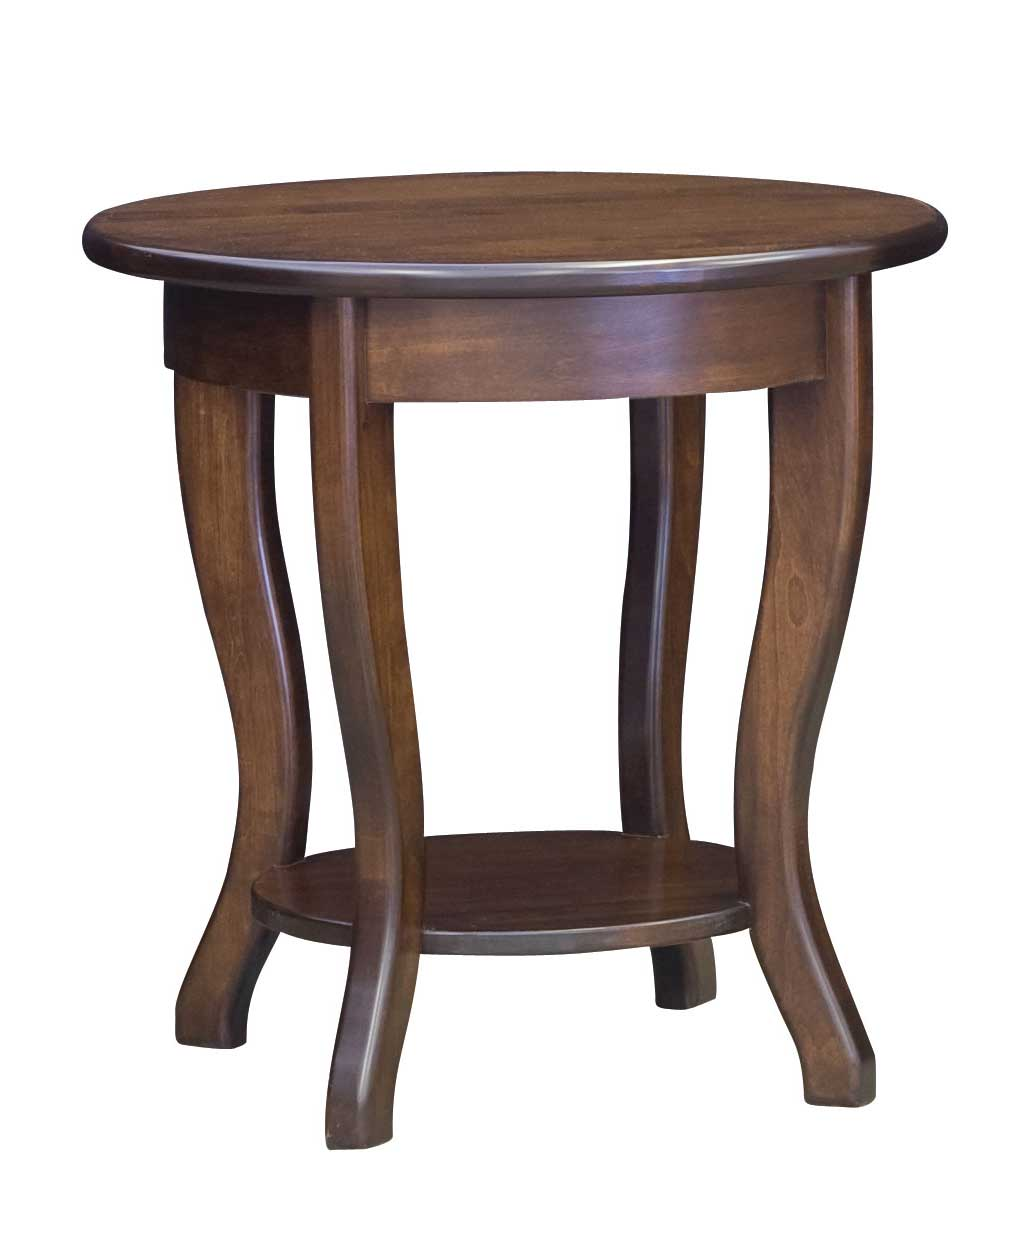 Amish Dining Table With Leaves Images Oval Room